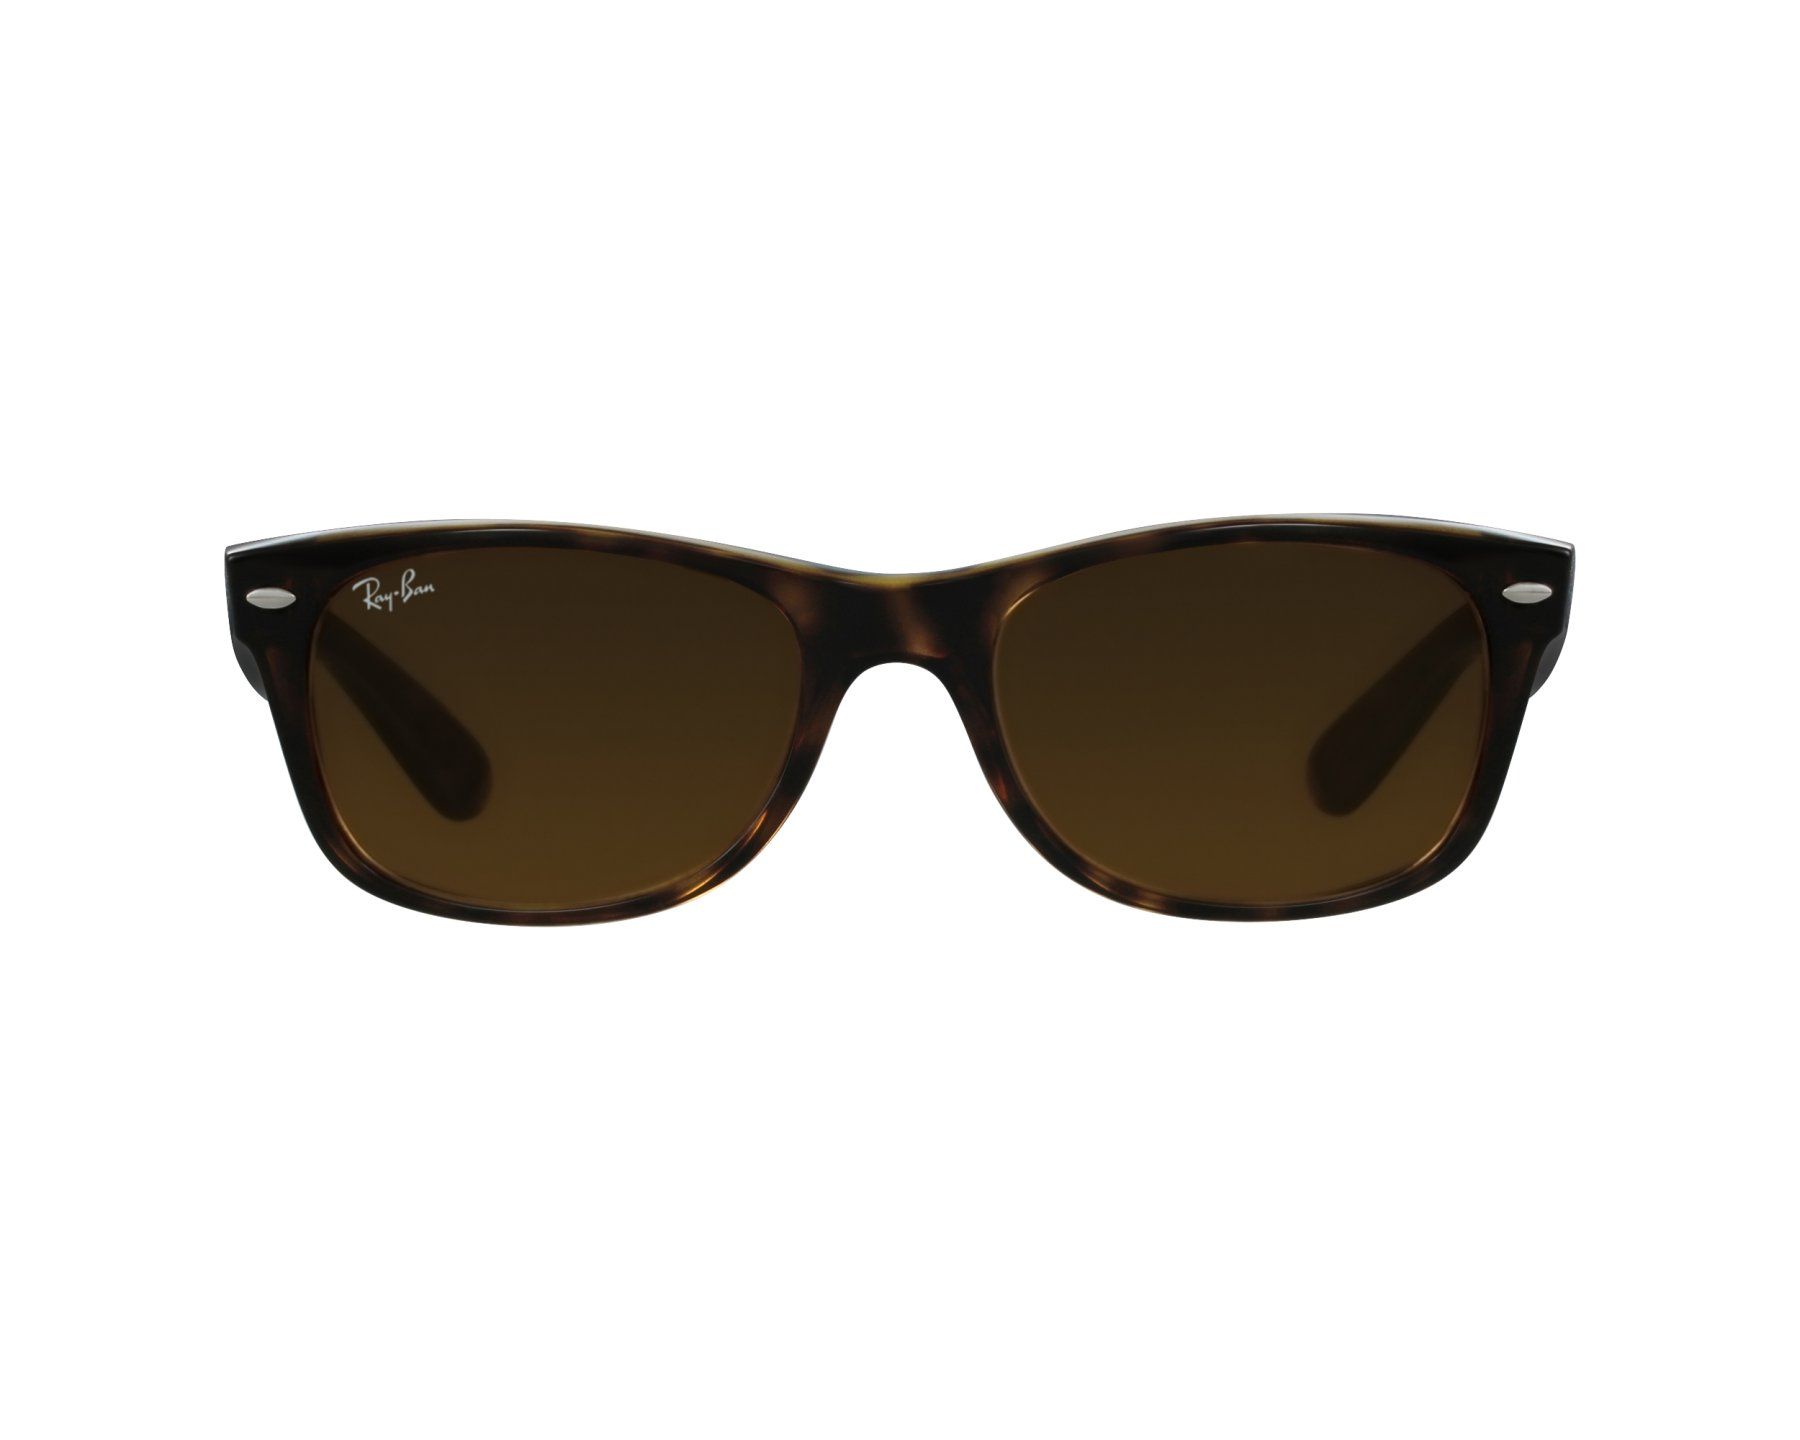 25c6142ad40 Cheap Sunglasses Ray Ban Style Rb5226 « Heritage Malta